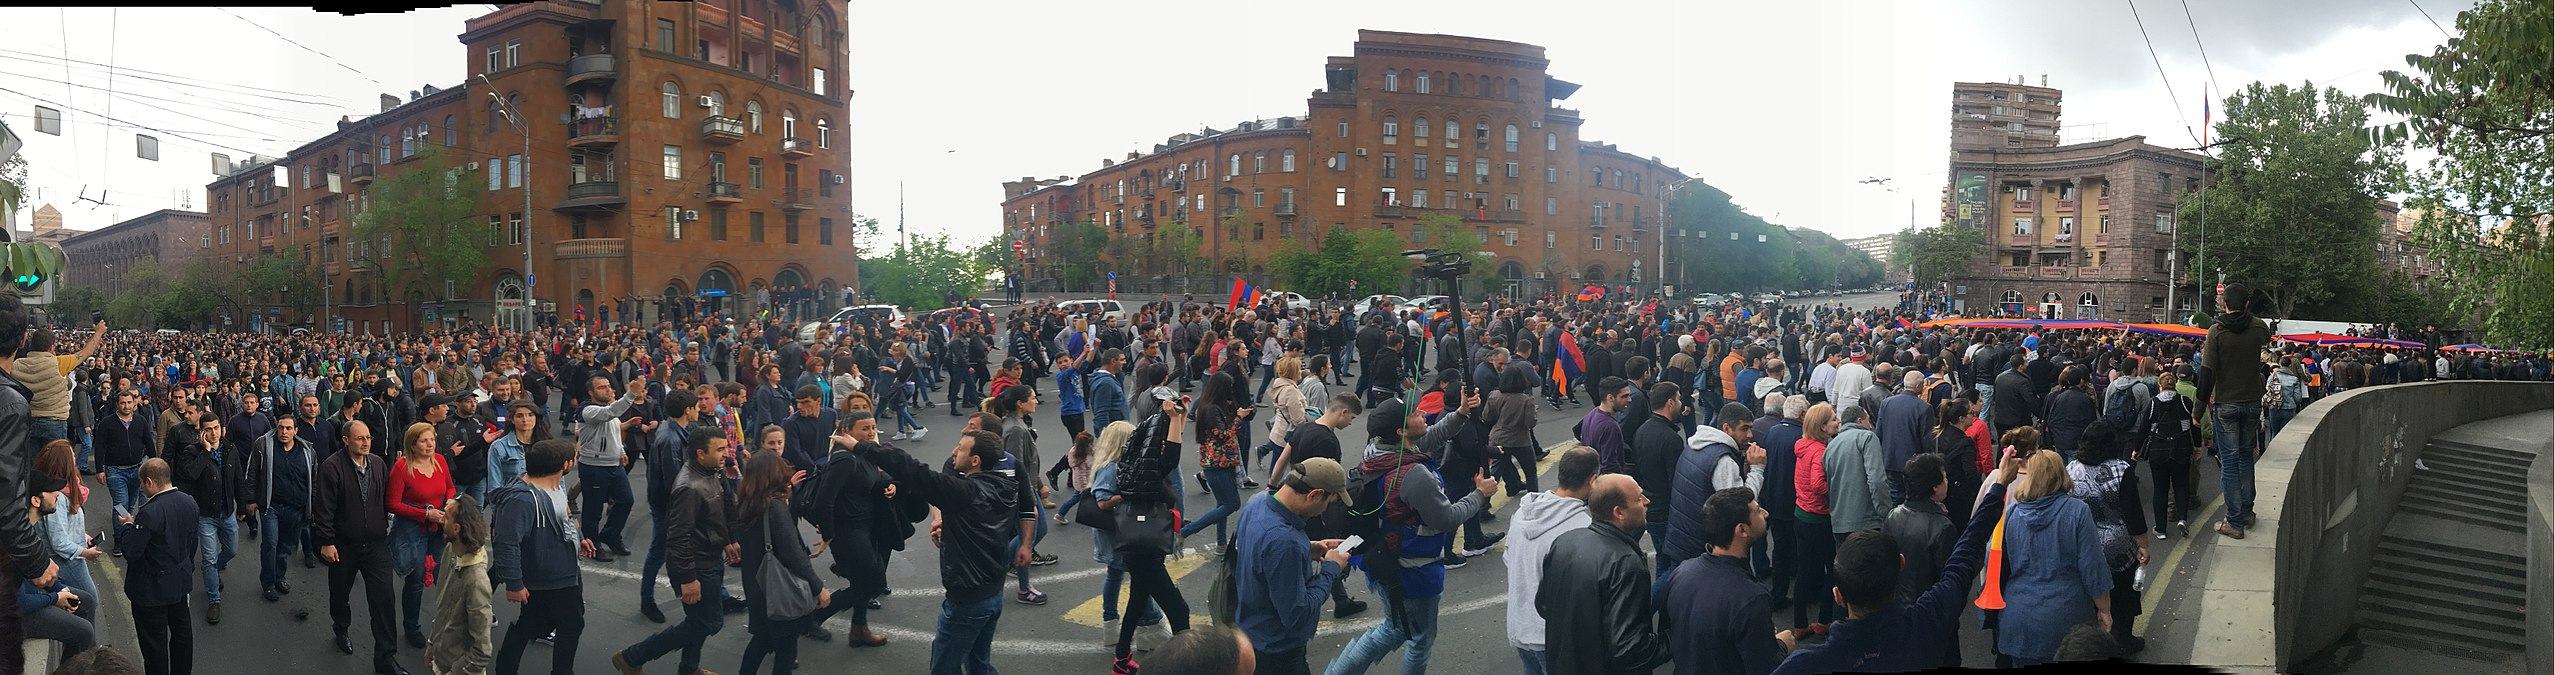 22.04.2018 Protest Demonstration, Yerevan 78.jpg